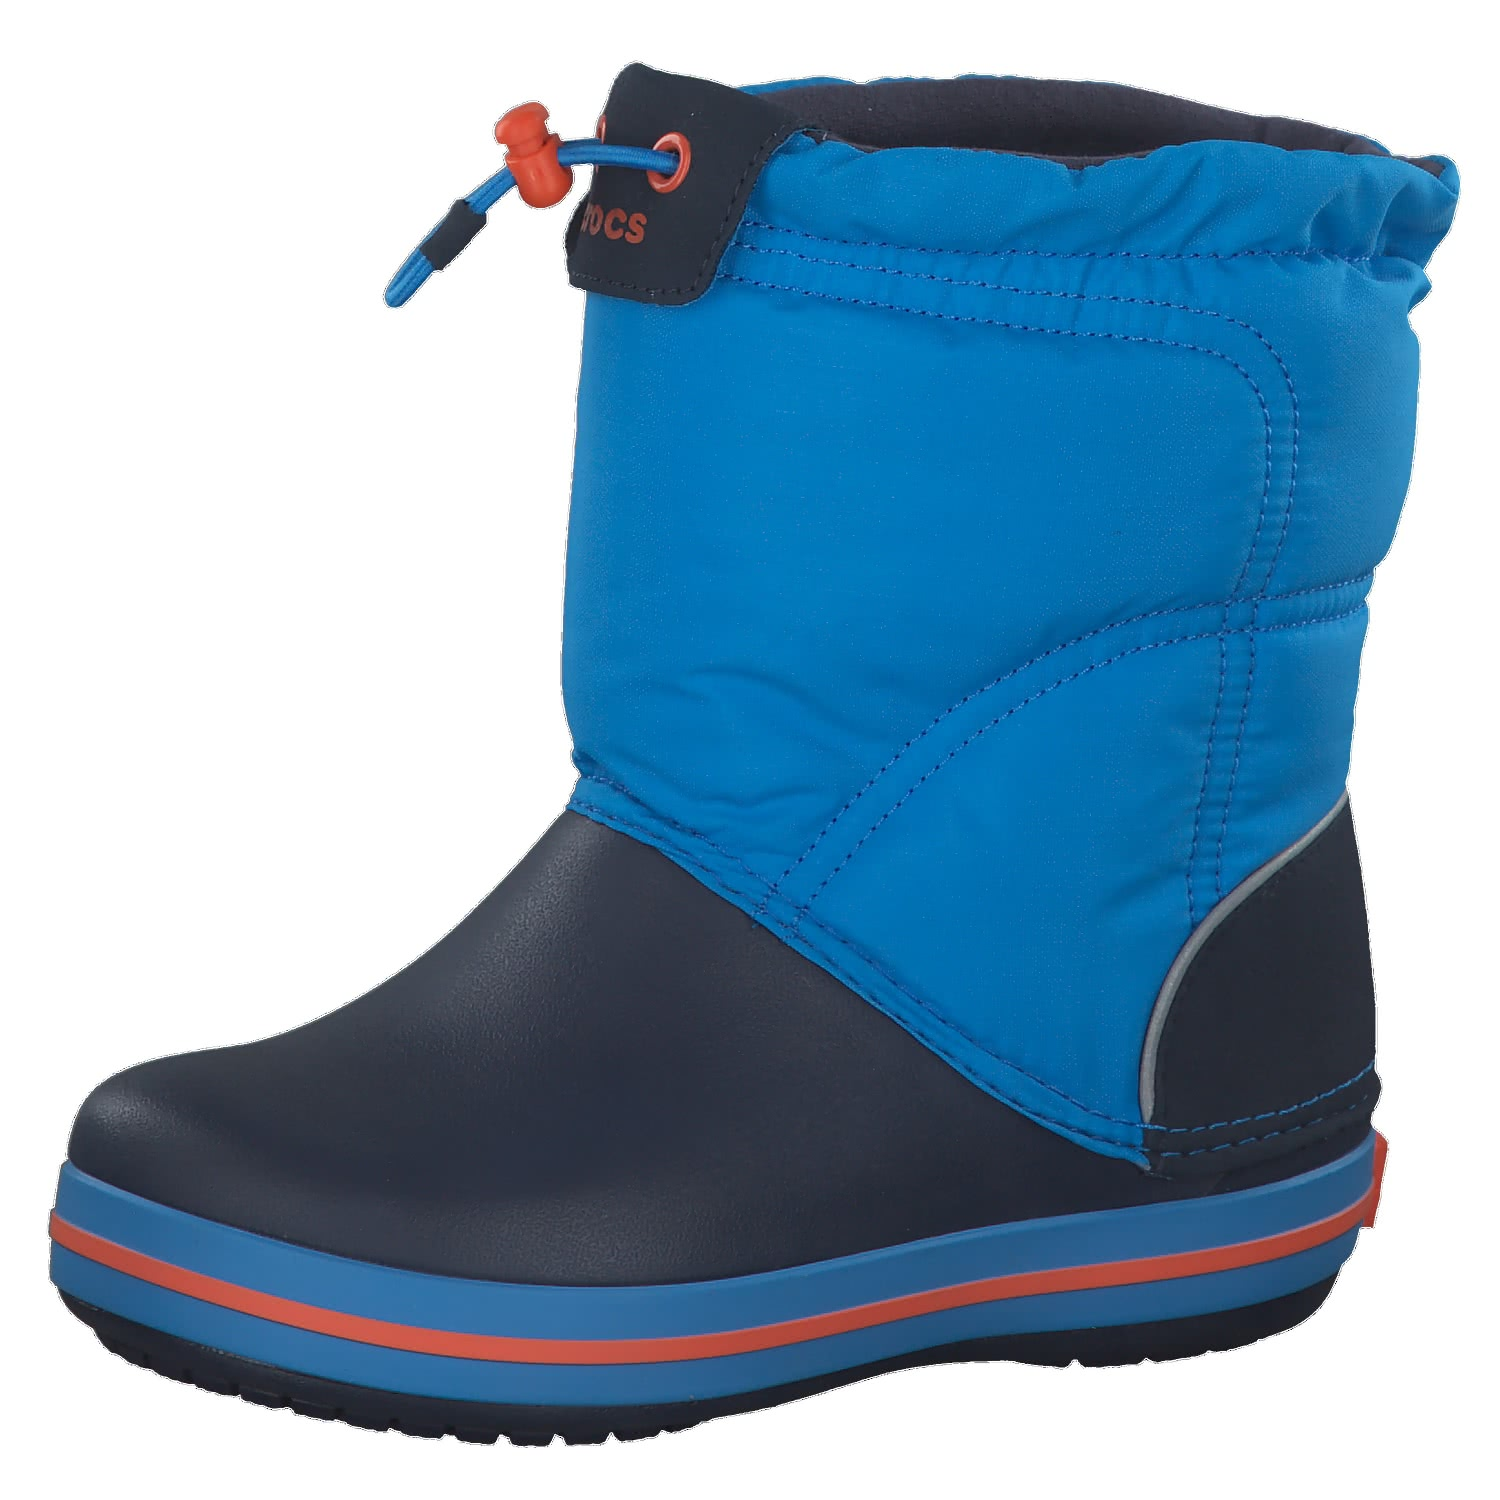 competitive price 9f13c 2613e Crocs Kinder Winterstiefel Crocband LodgePoint Boot K 203509 ...